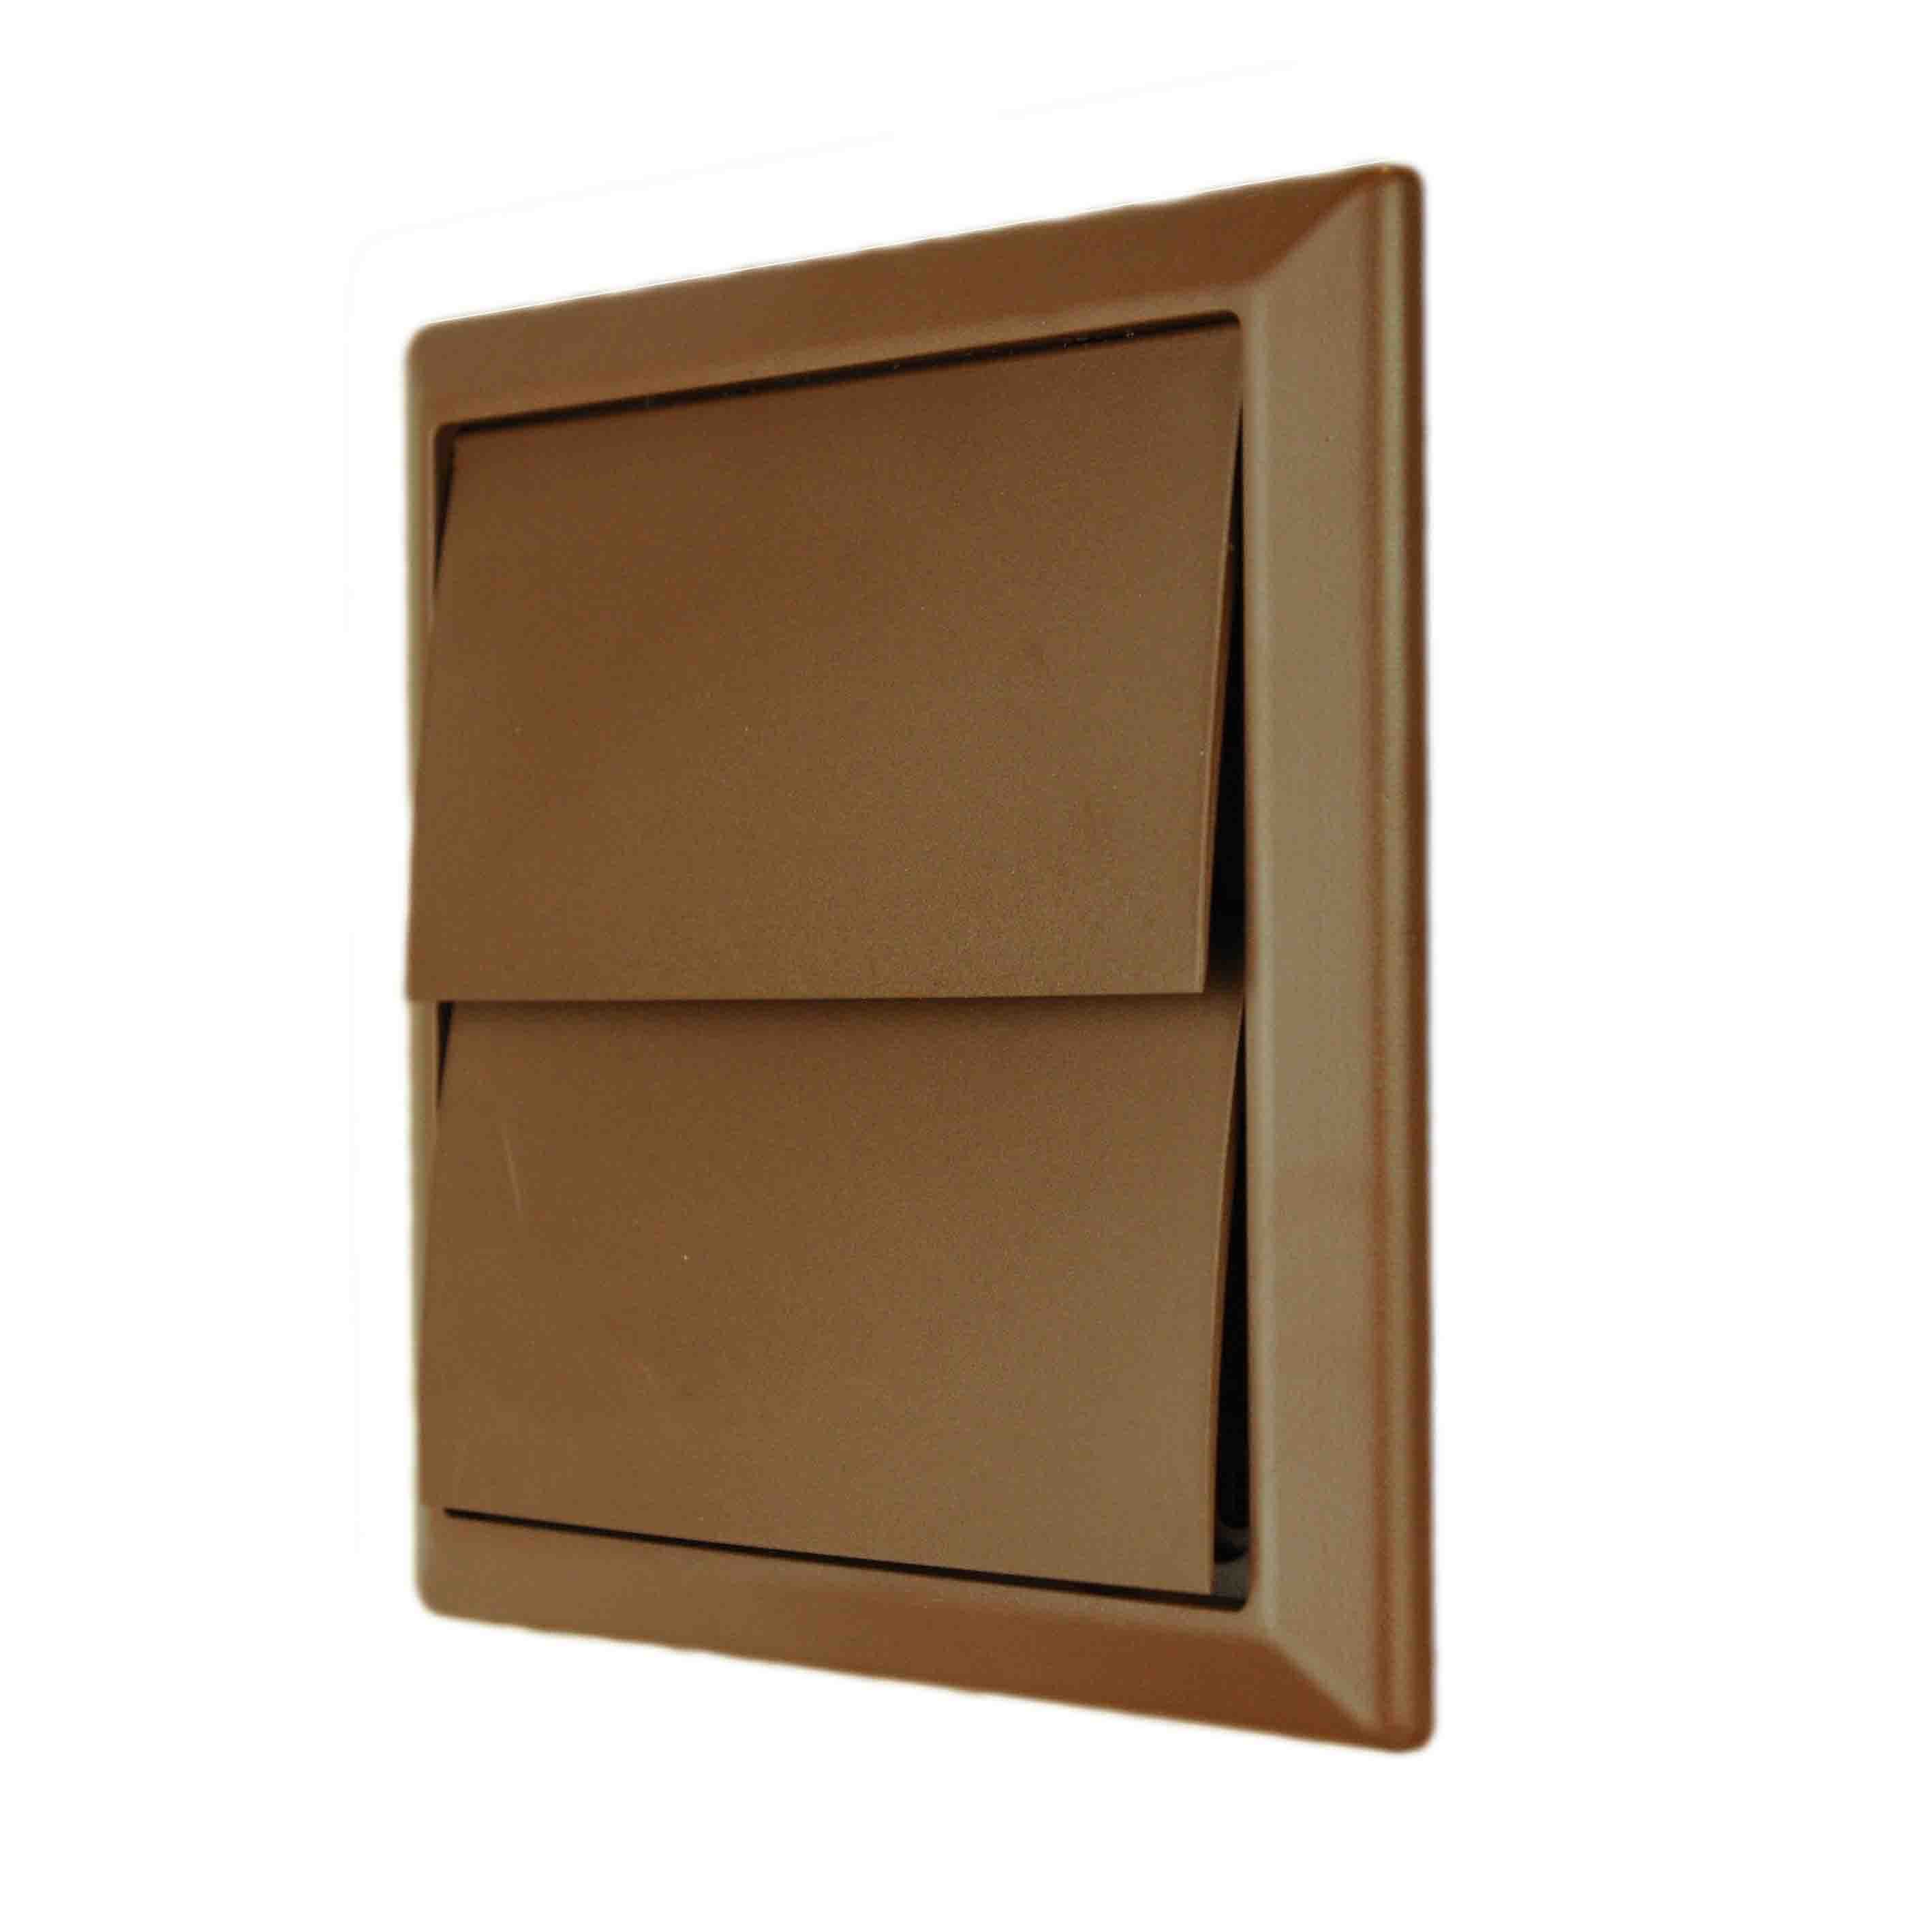 NVA 4900B 100mm Brown Gravity Wall Outlet